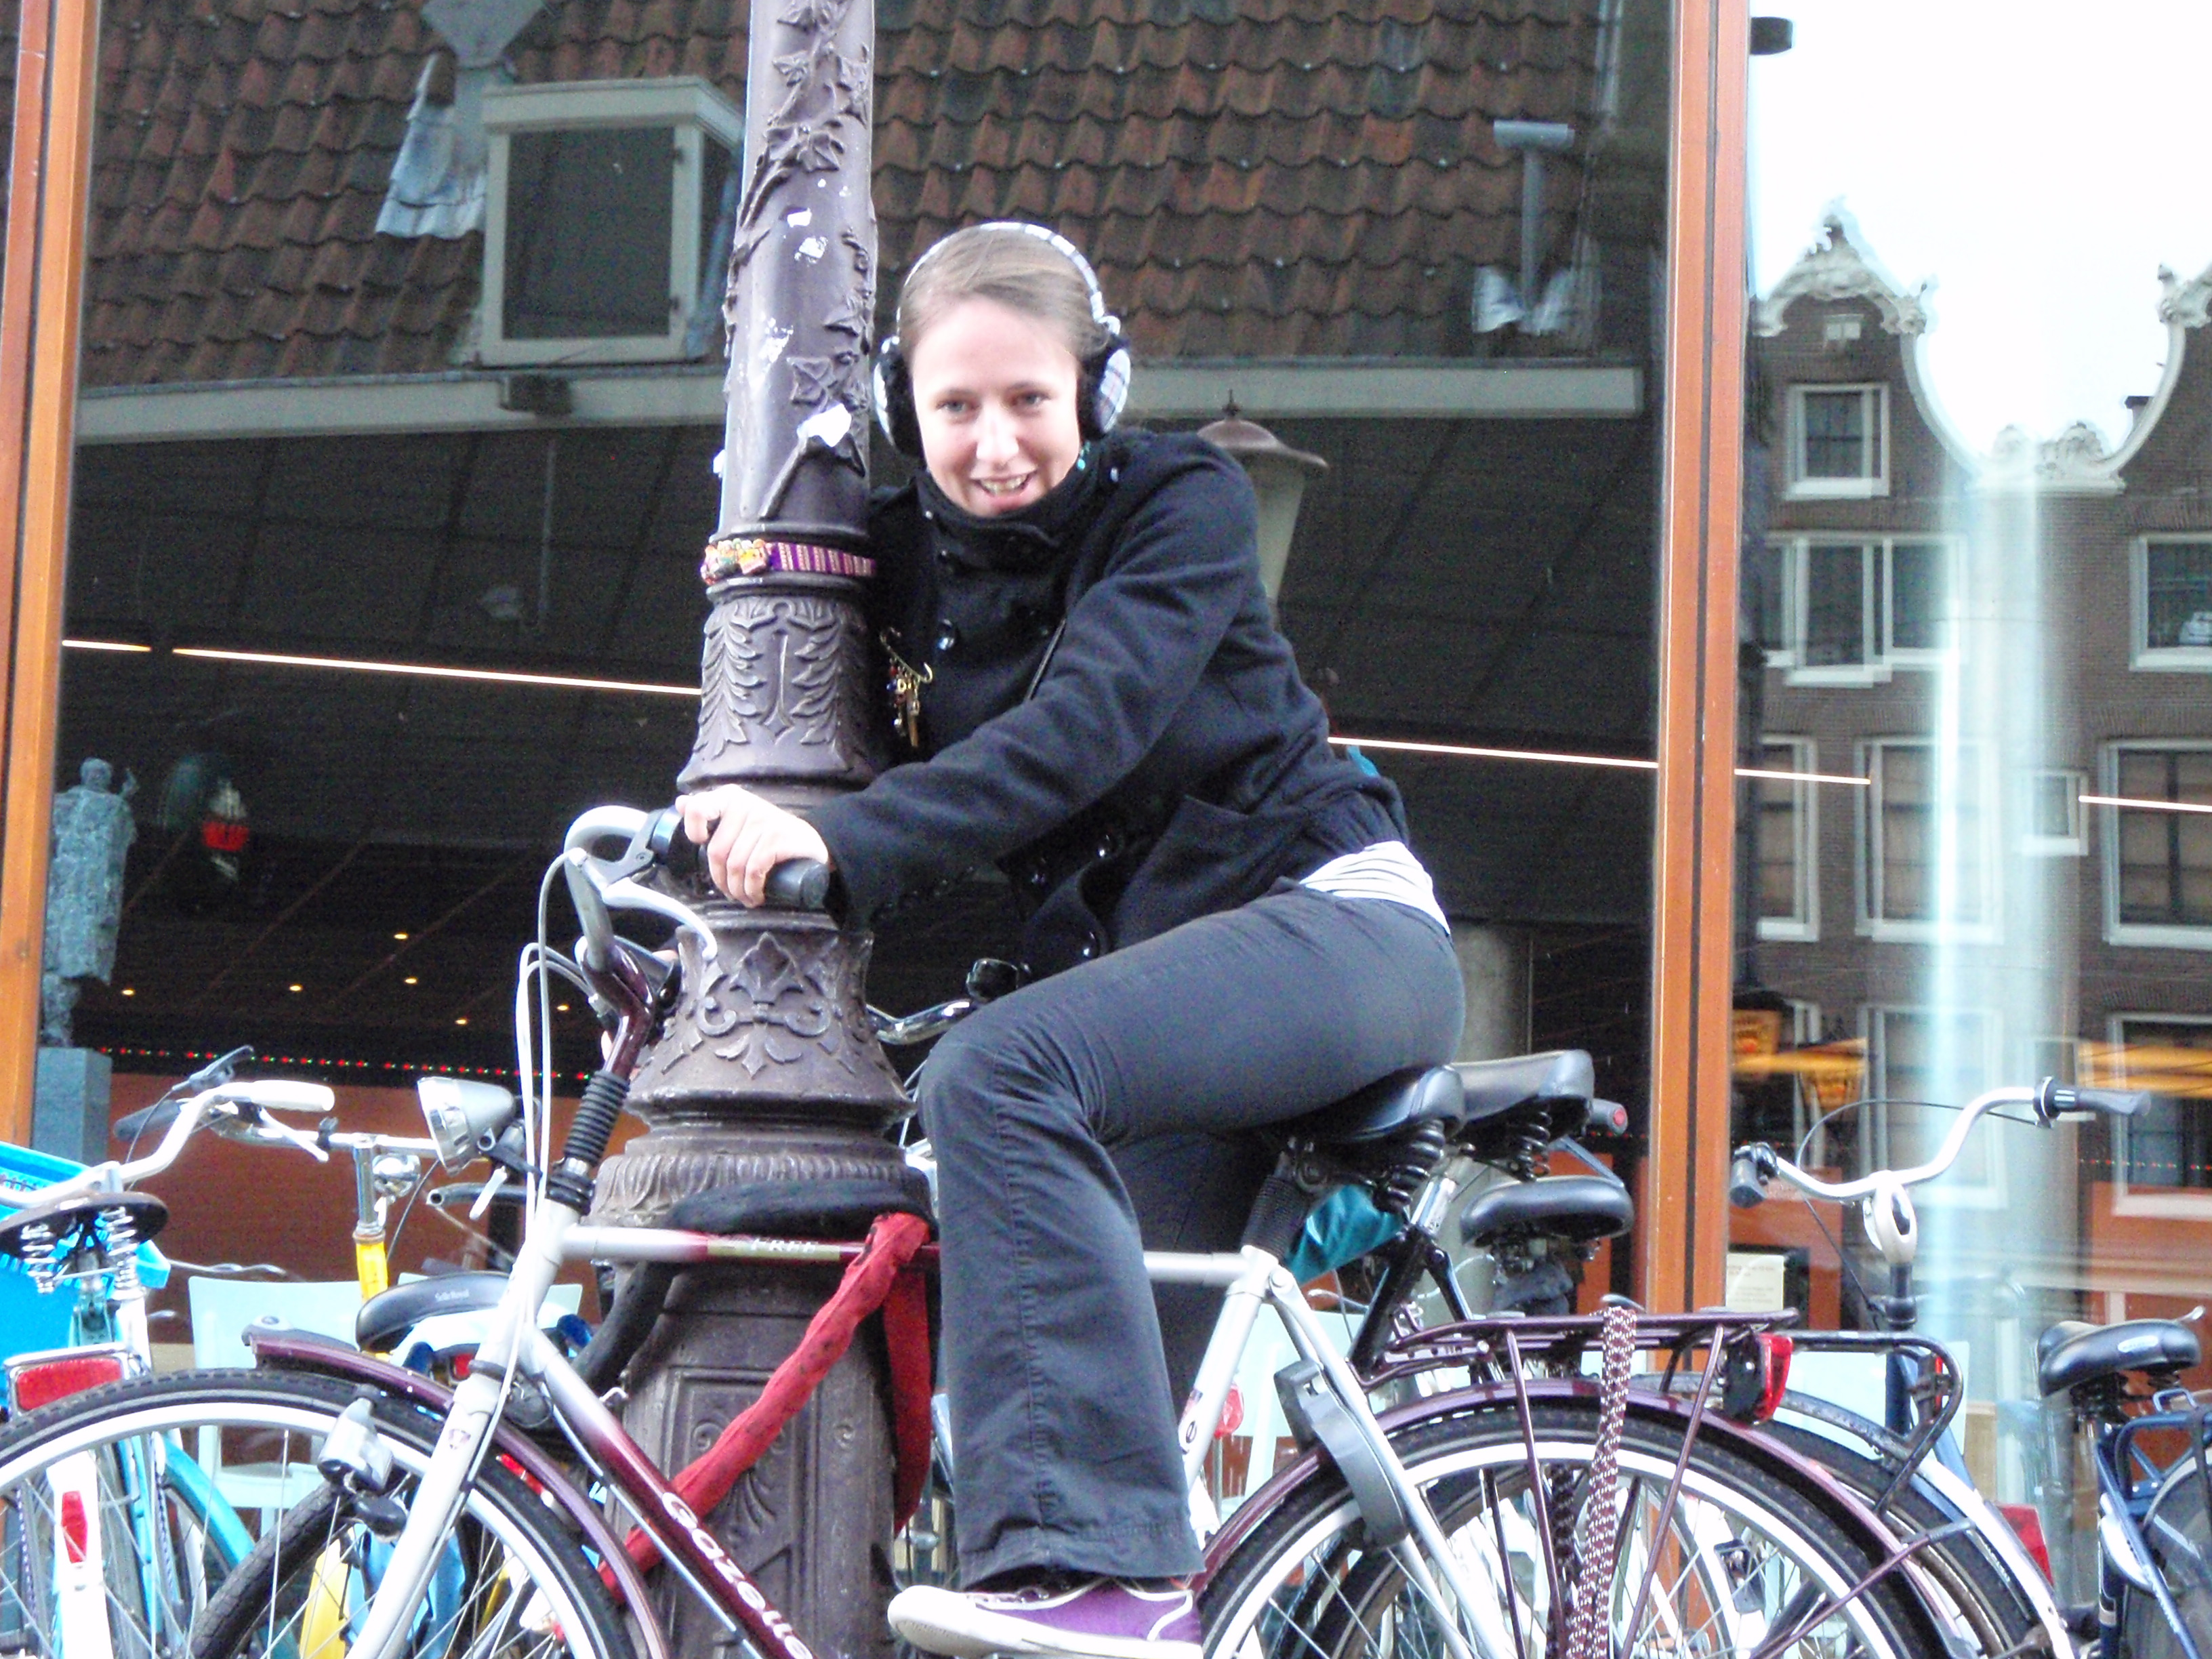 Polish Best Mate, Beata with Bike; Amsterdam, Netherlands; 2010